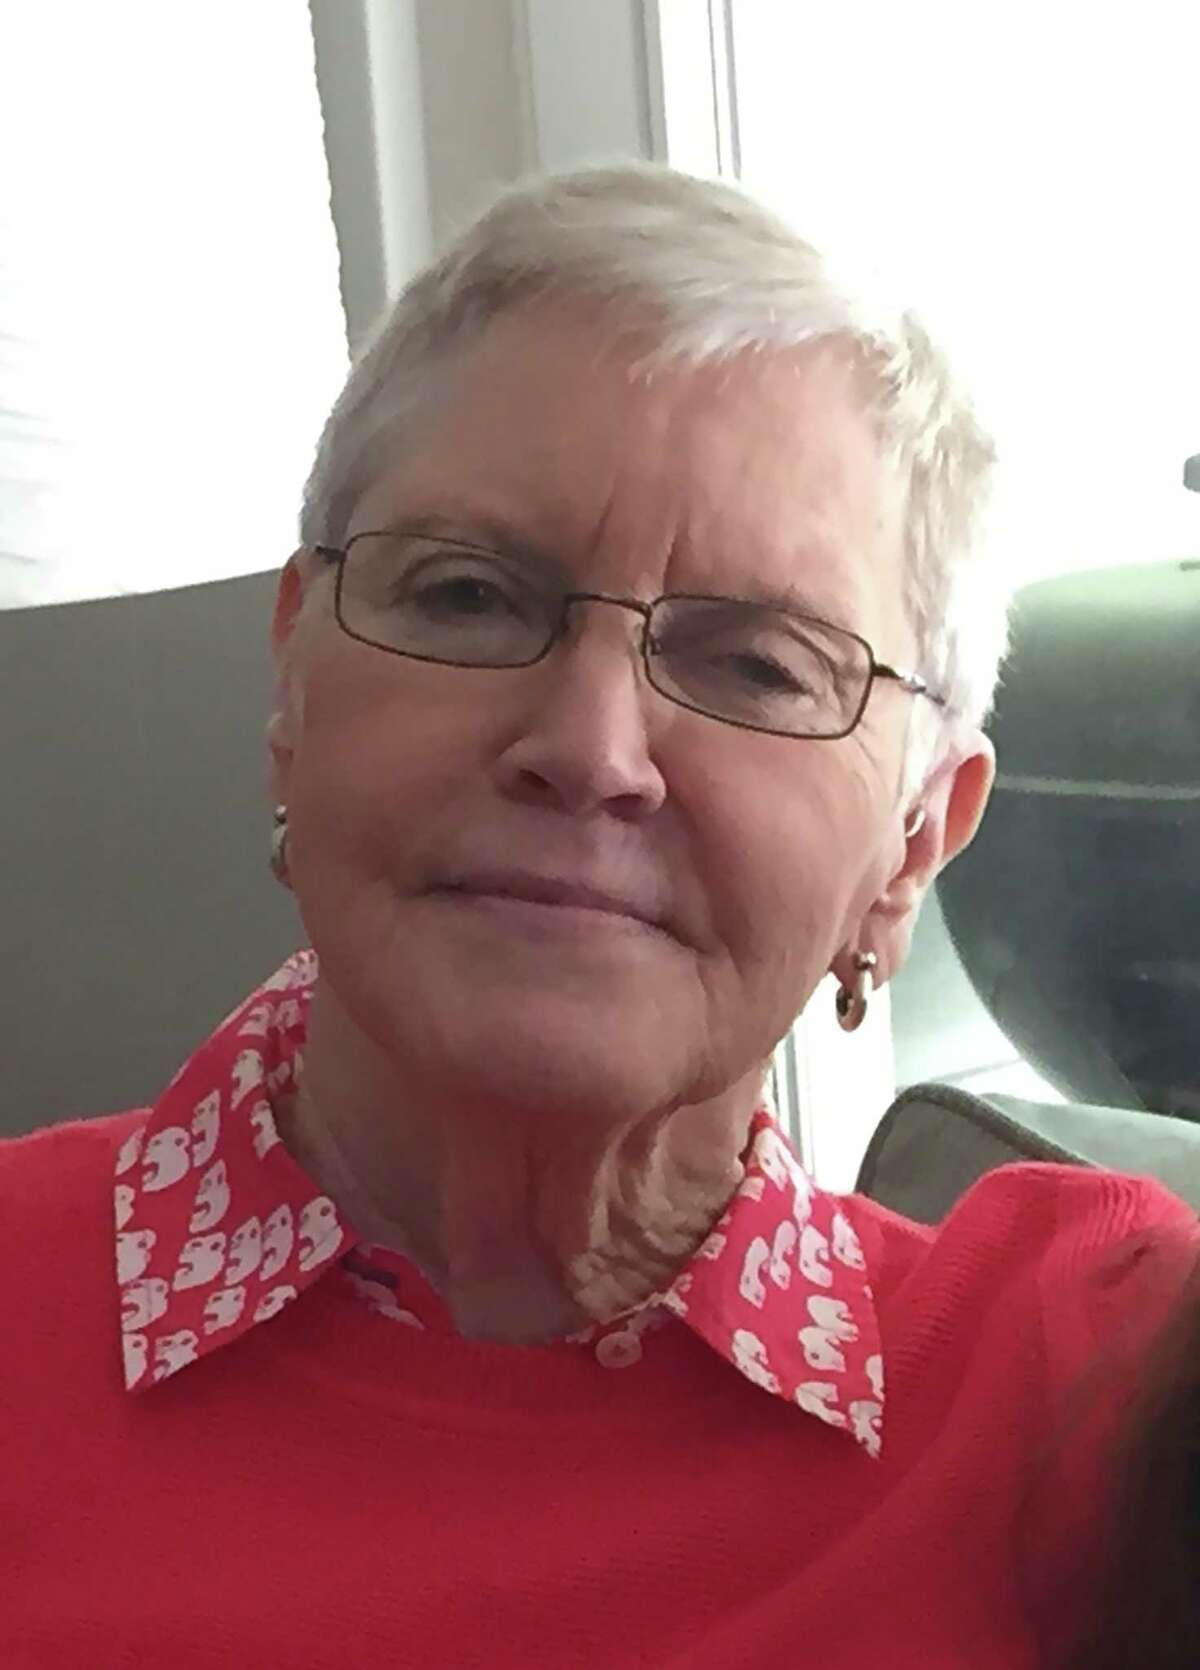 Etta Nugent, 75, was found stabbed to death at her Neff Street home on May 20, 2019.